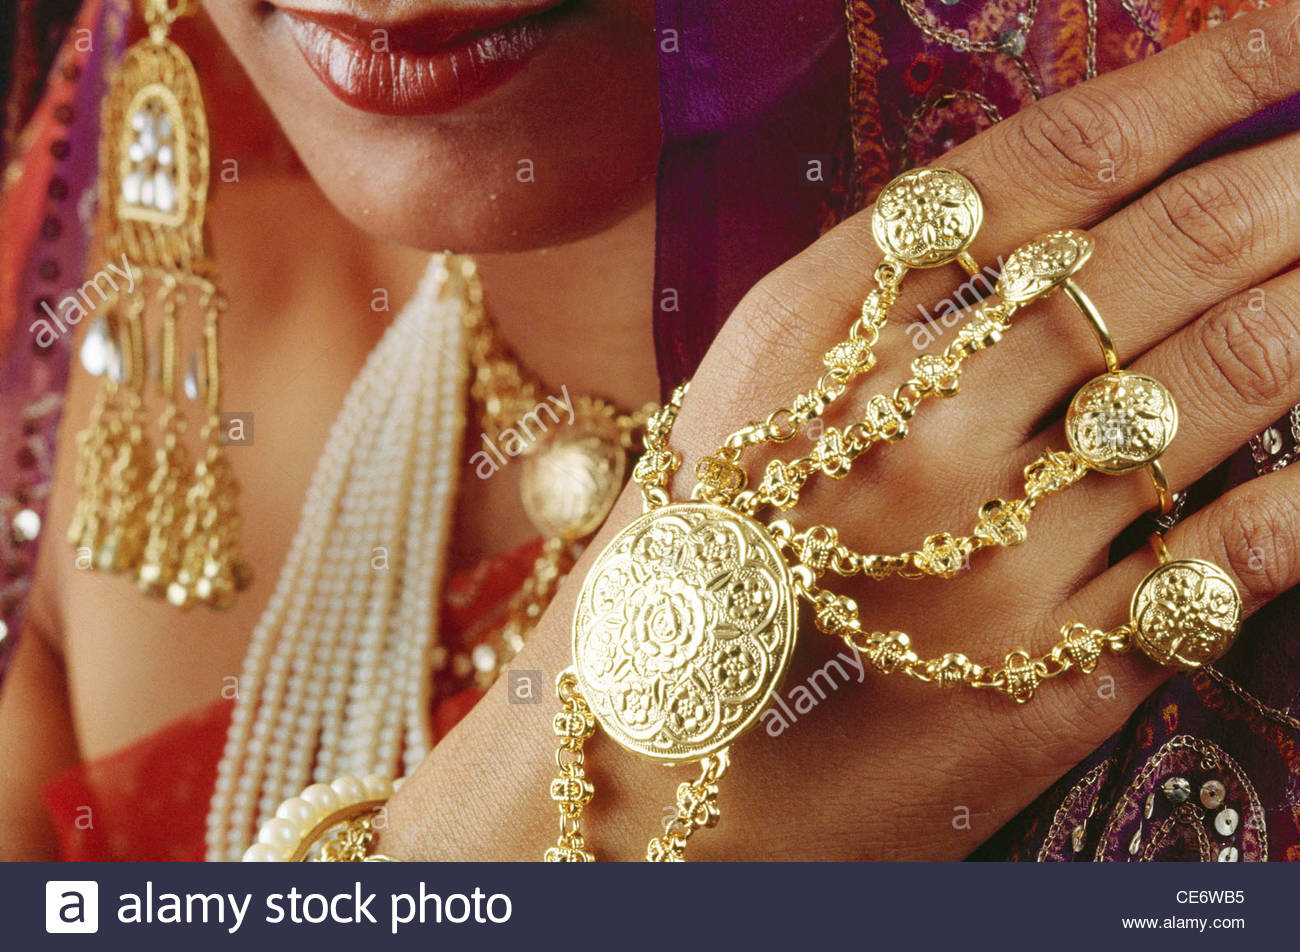 woman with gold hand jewellery india Stock Photo: 43177545 - Alamy